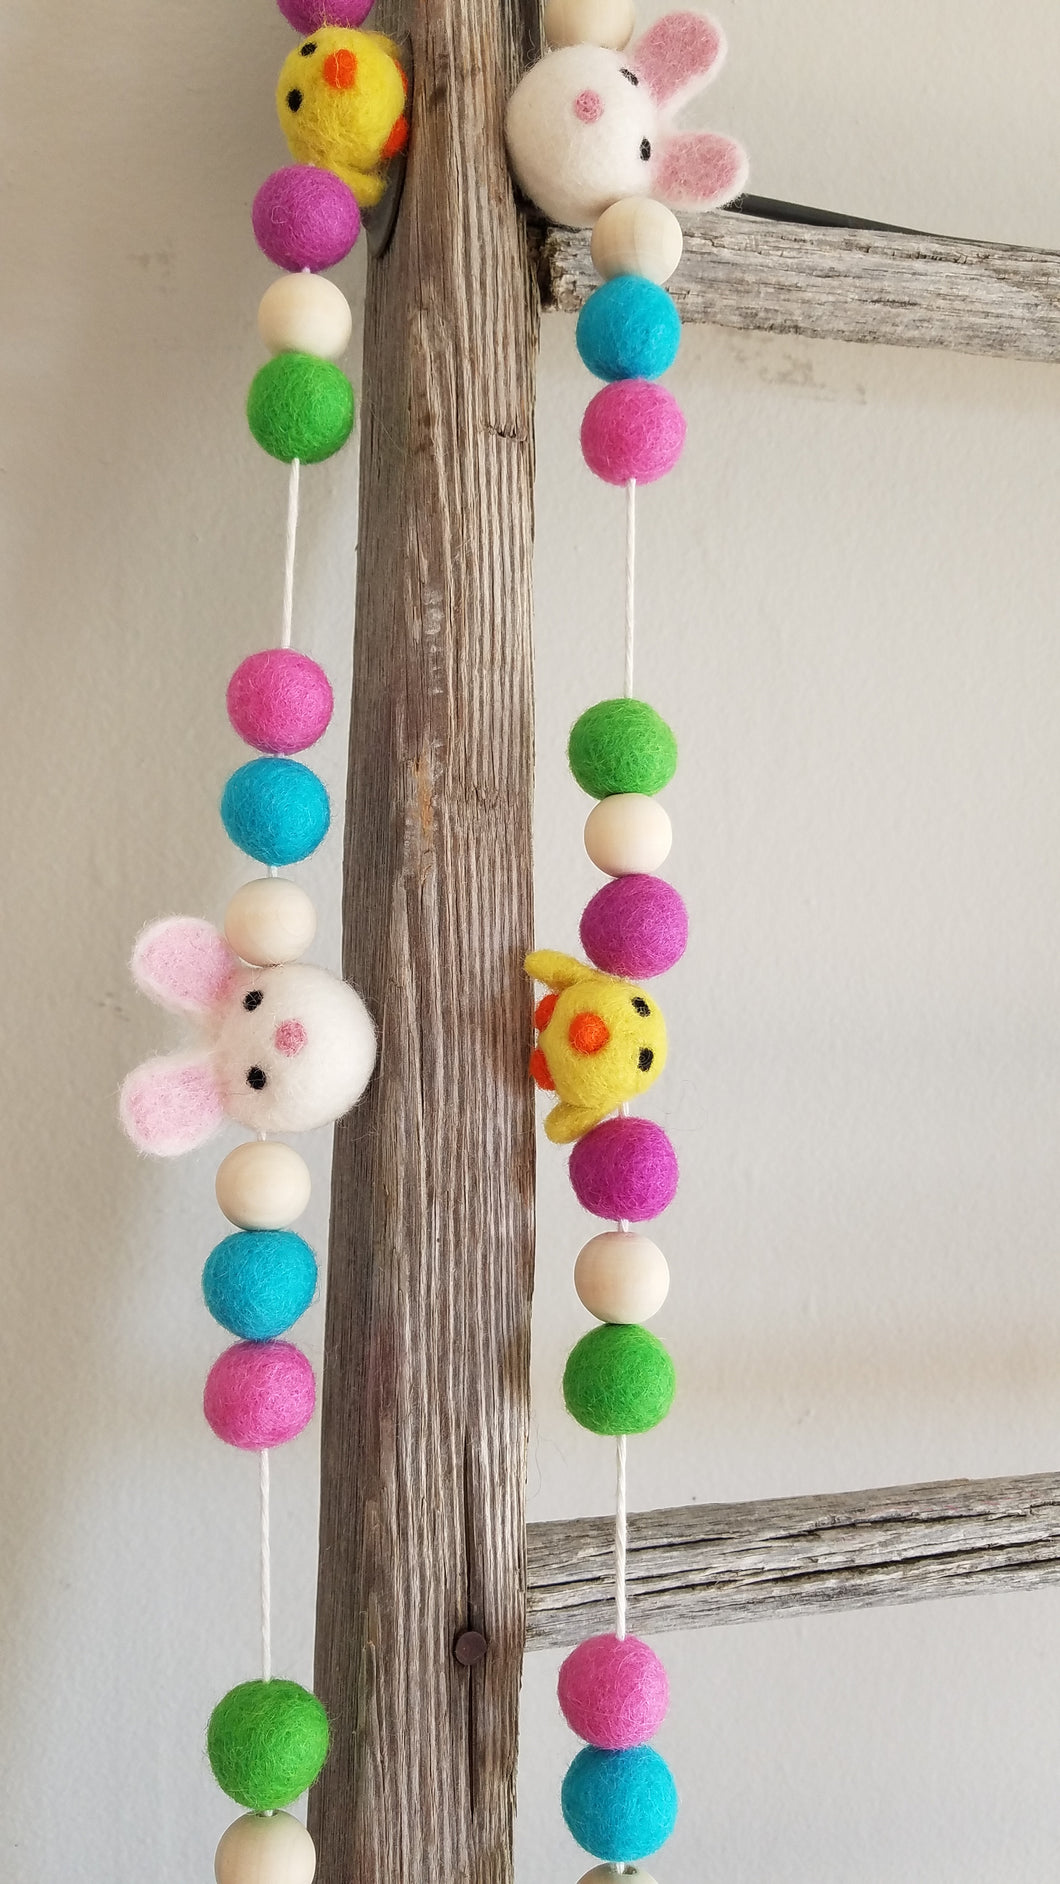 Chick and  bunny garland. Sprong decor 5ft